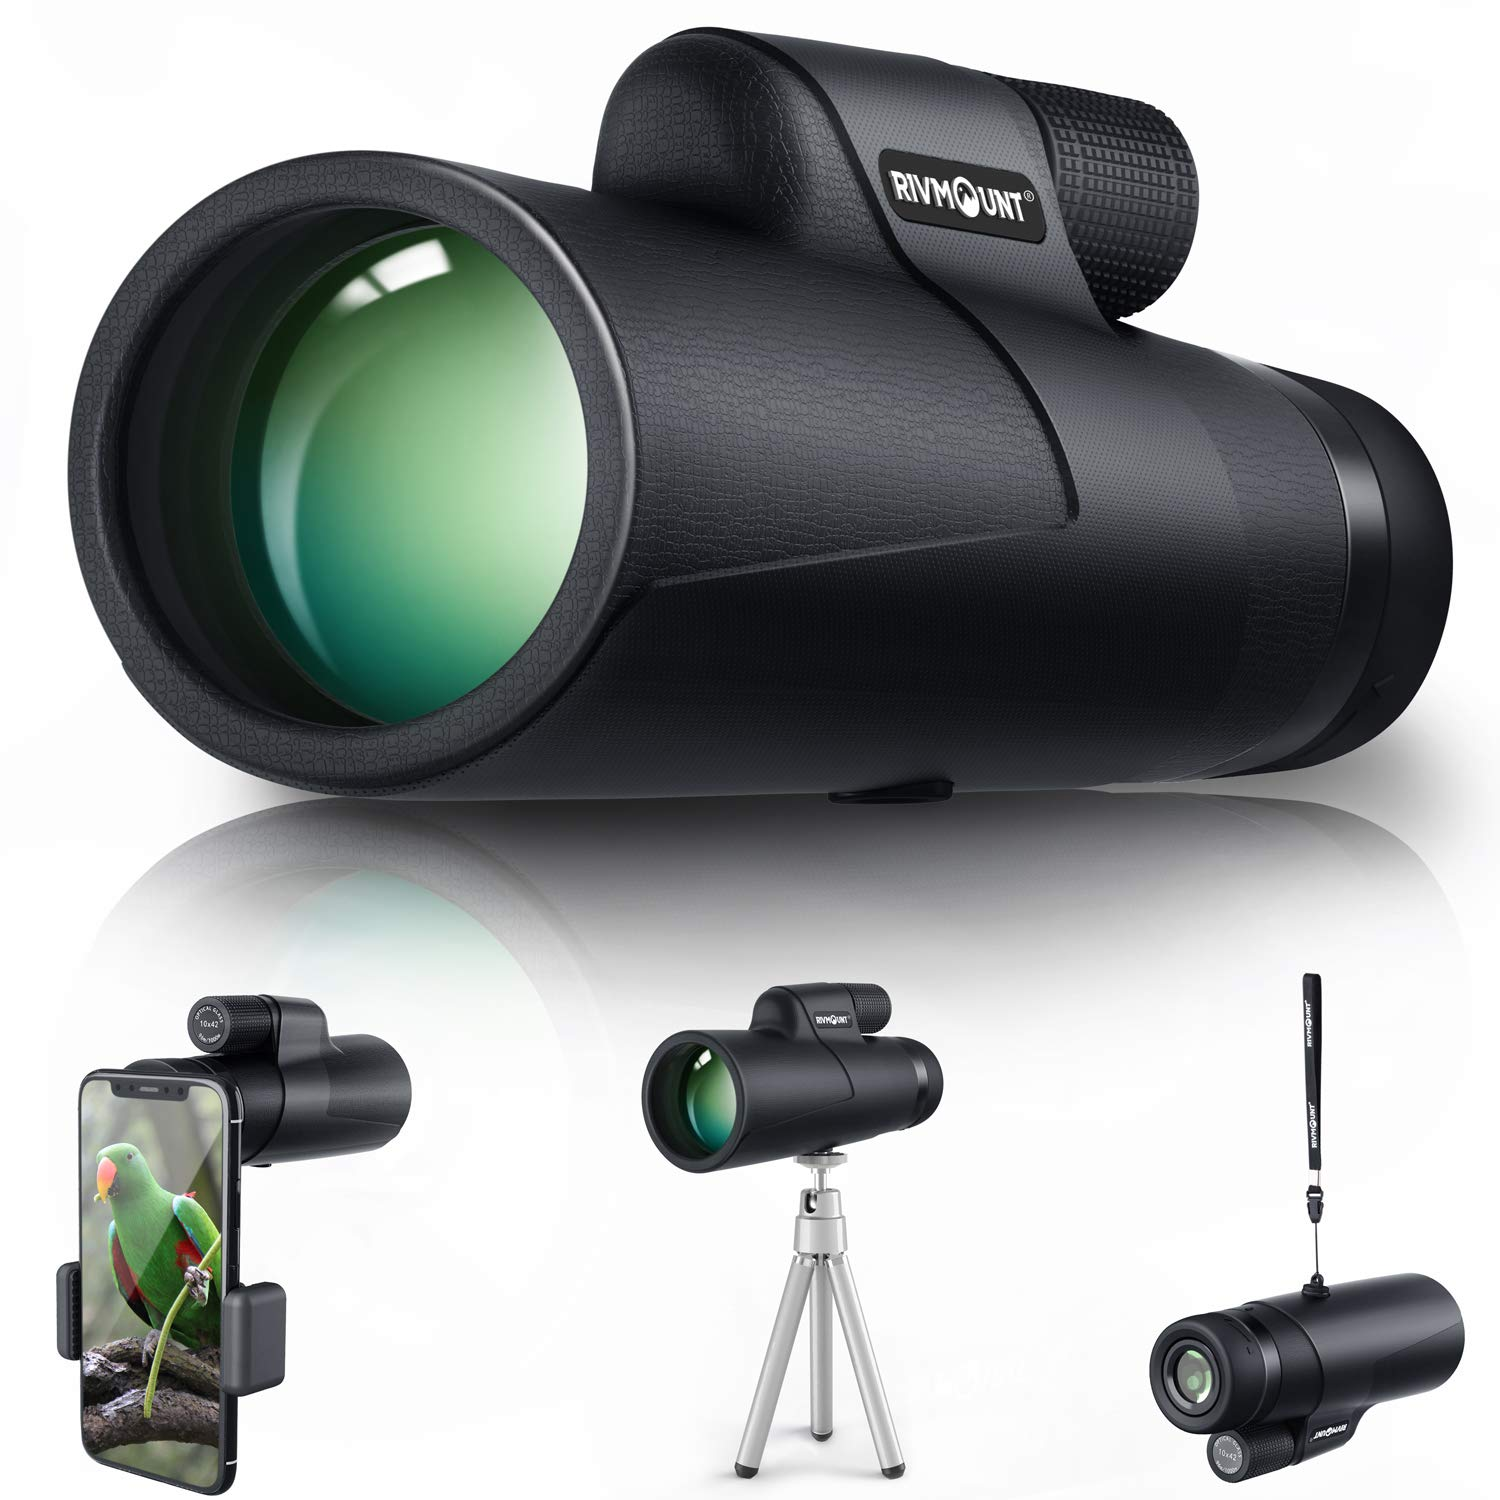 rivmount 10x42 HD Monocular for Adult Compact Durable,Roof Prism with FMC BK4 Lens for Hiking Birdwatching Match Watching and Concert RIVMOUNT RMB Black 101